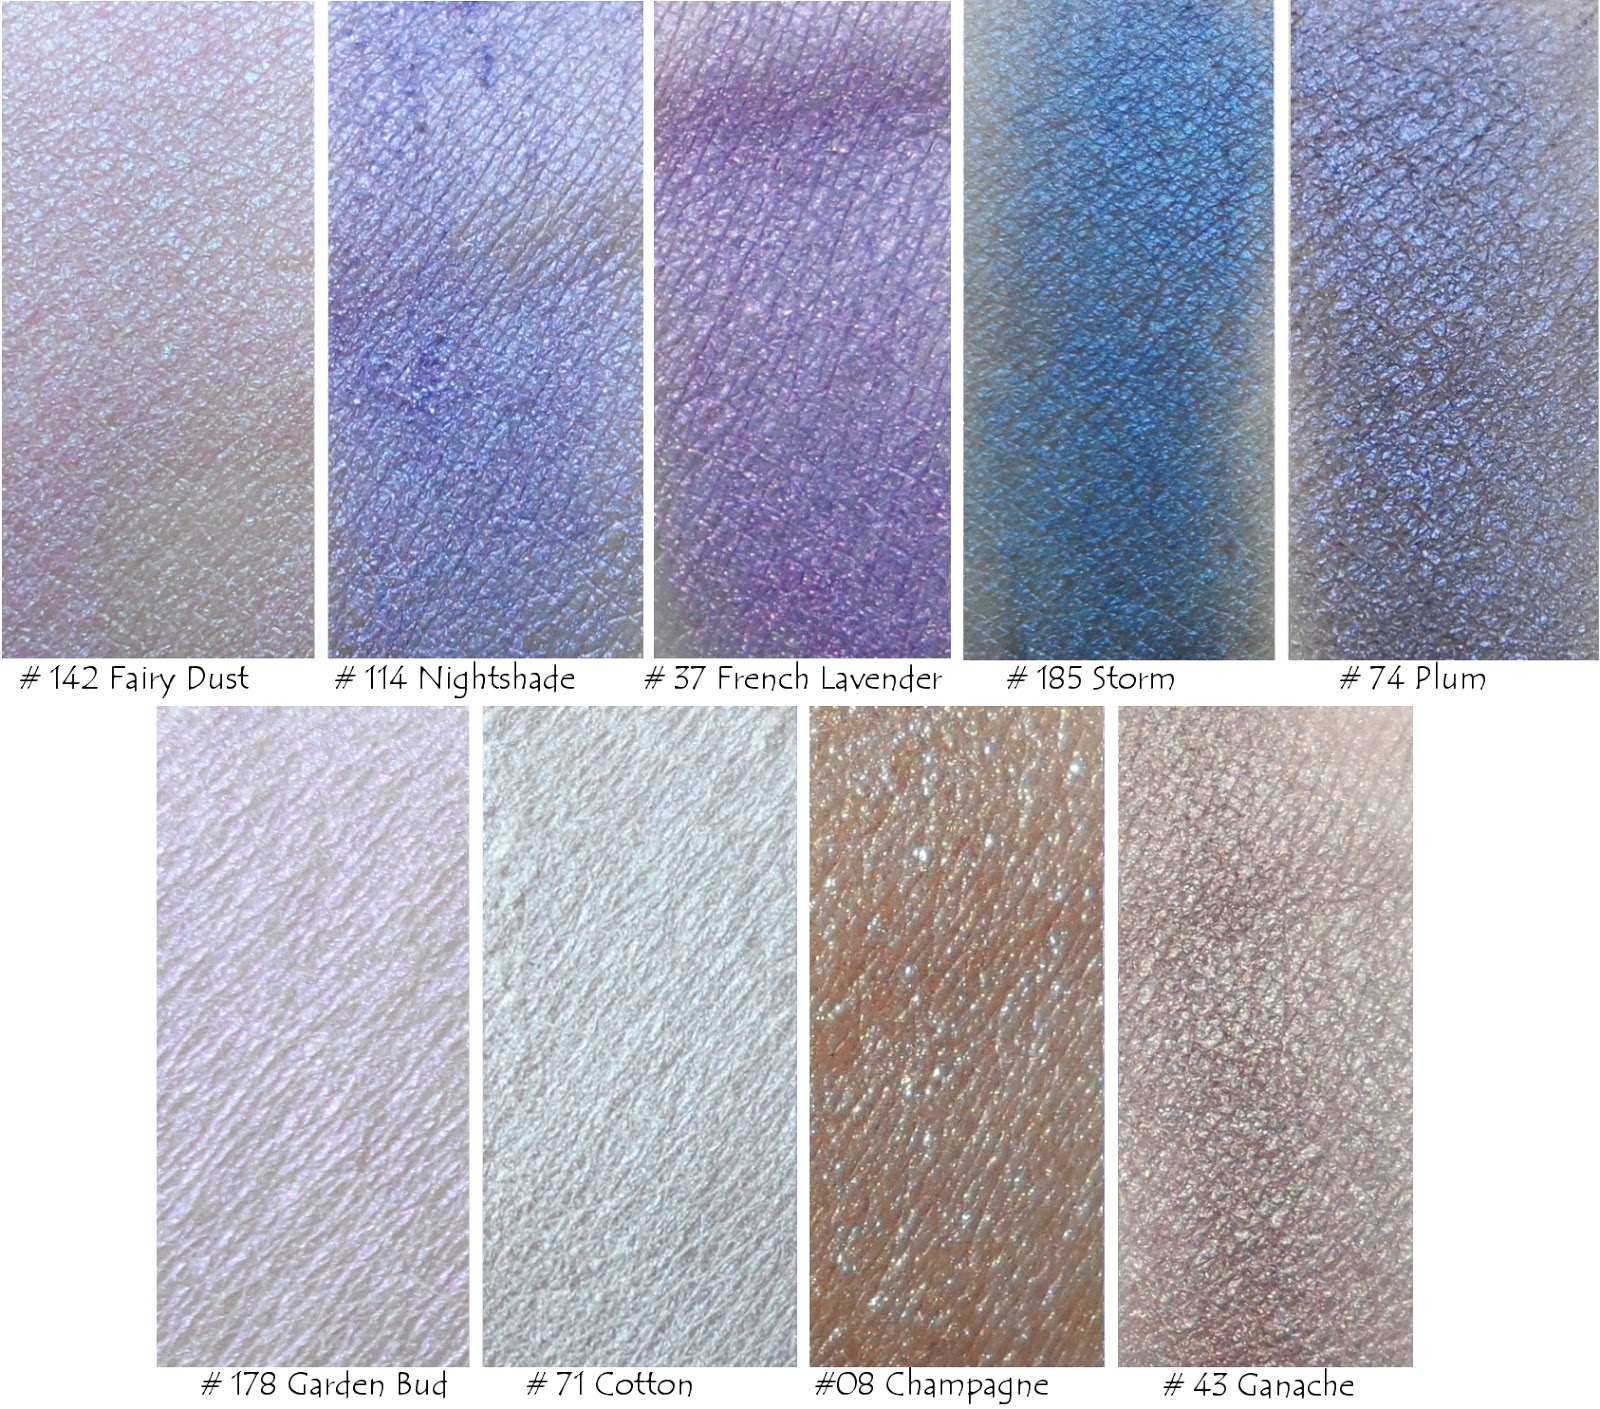 Madison Street Beauty fairy dust, nightshade, french lavender, storm, plum, garden bud, cotton , champagne, ganache swatch